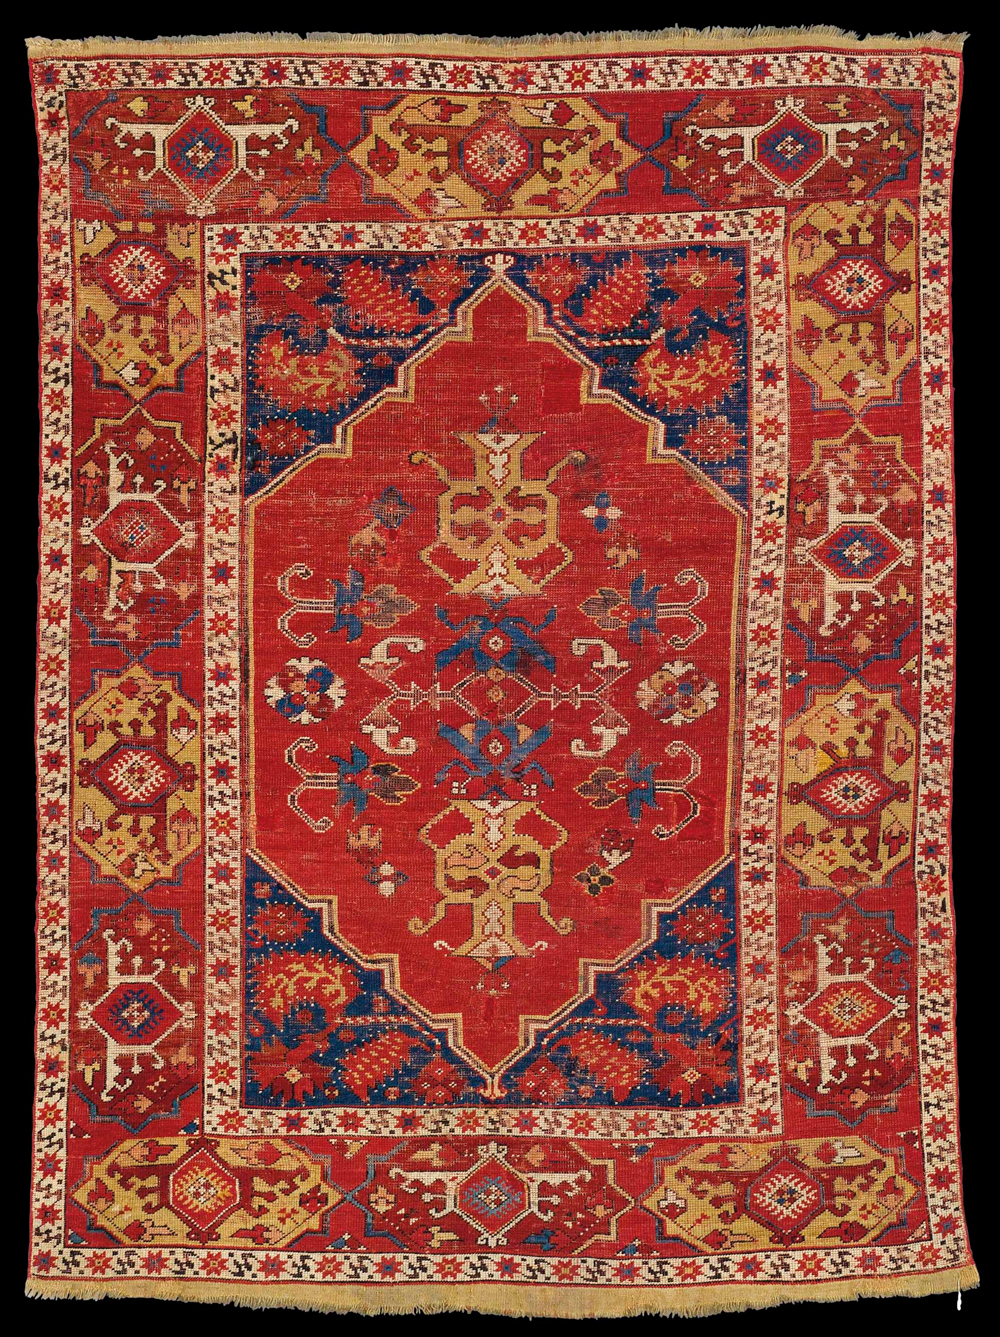 Christie's rugs and carpets